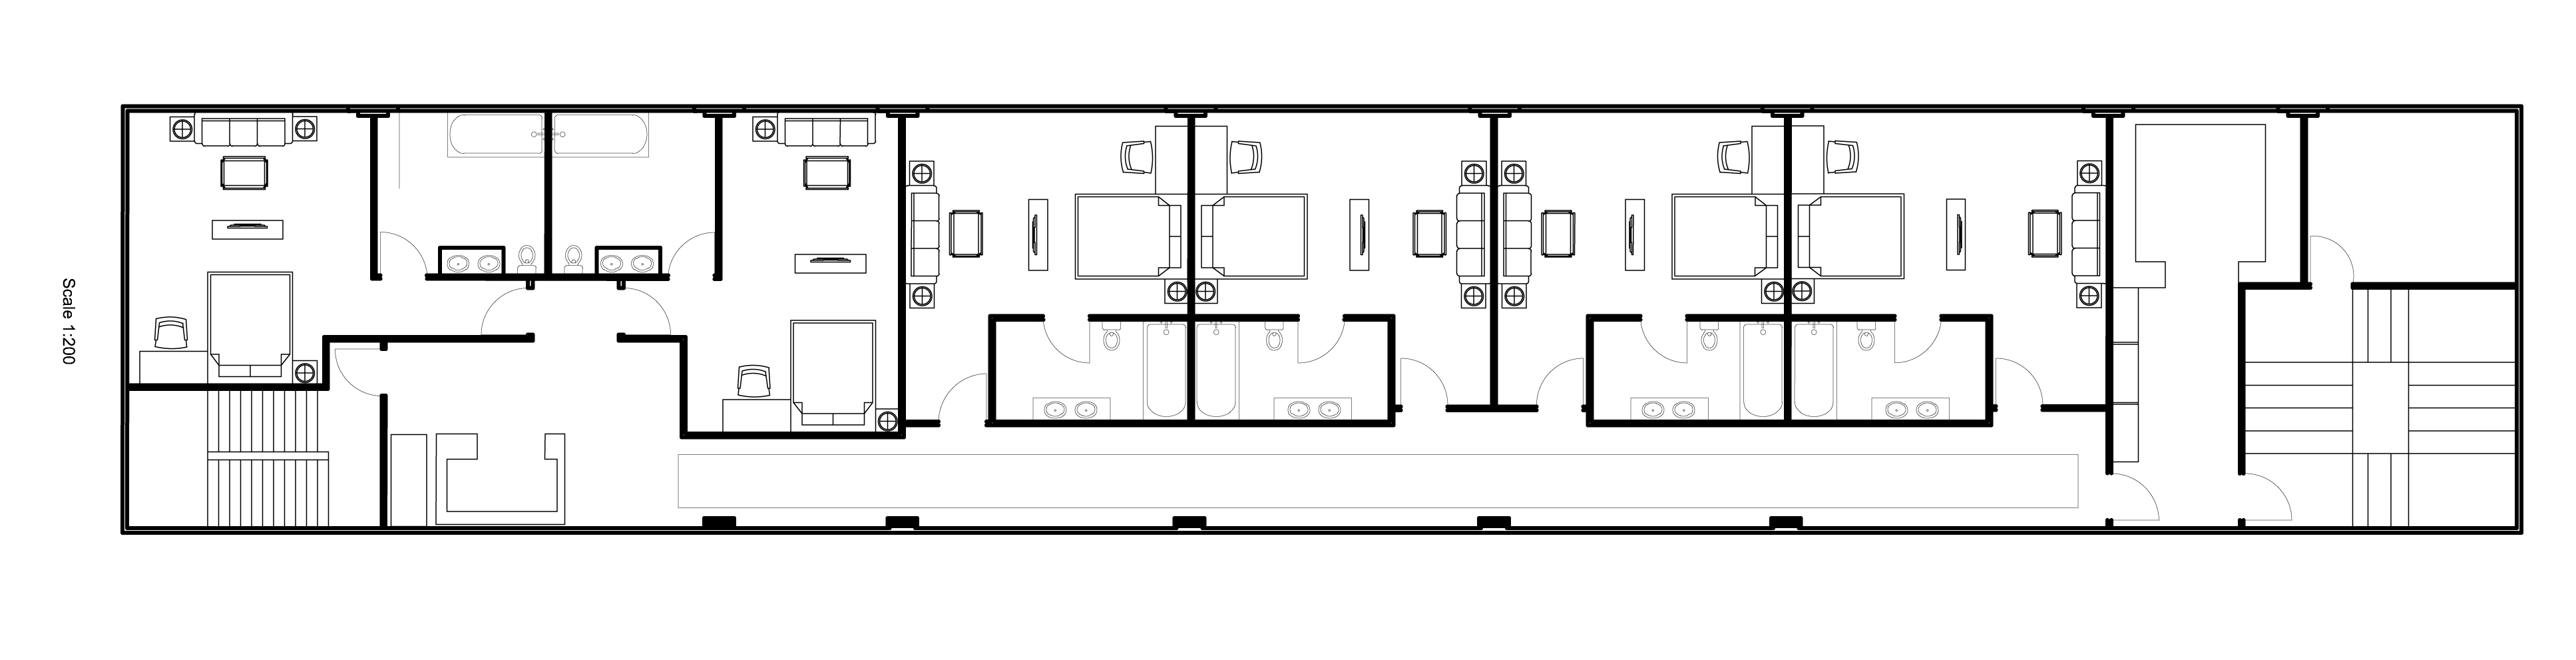 Hotel floor plans floor plans the marcum hdrbs miami university lisa16 hotel floor plans Room floor design